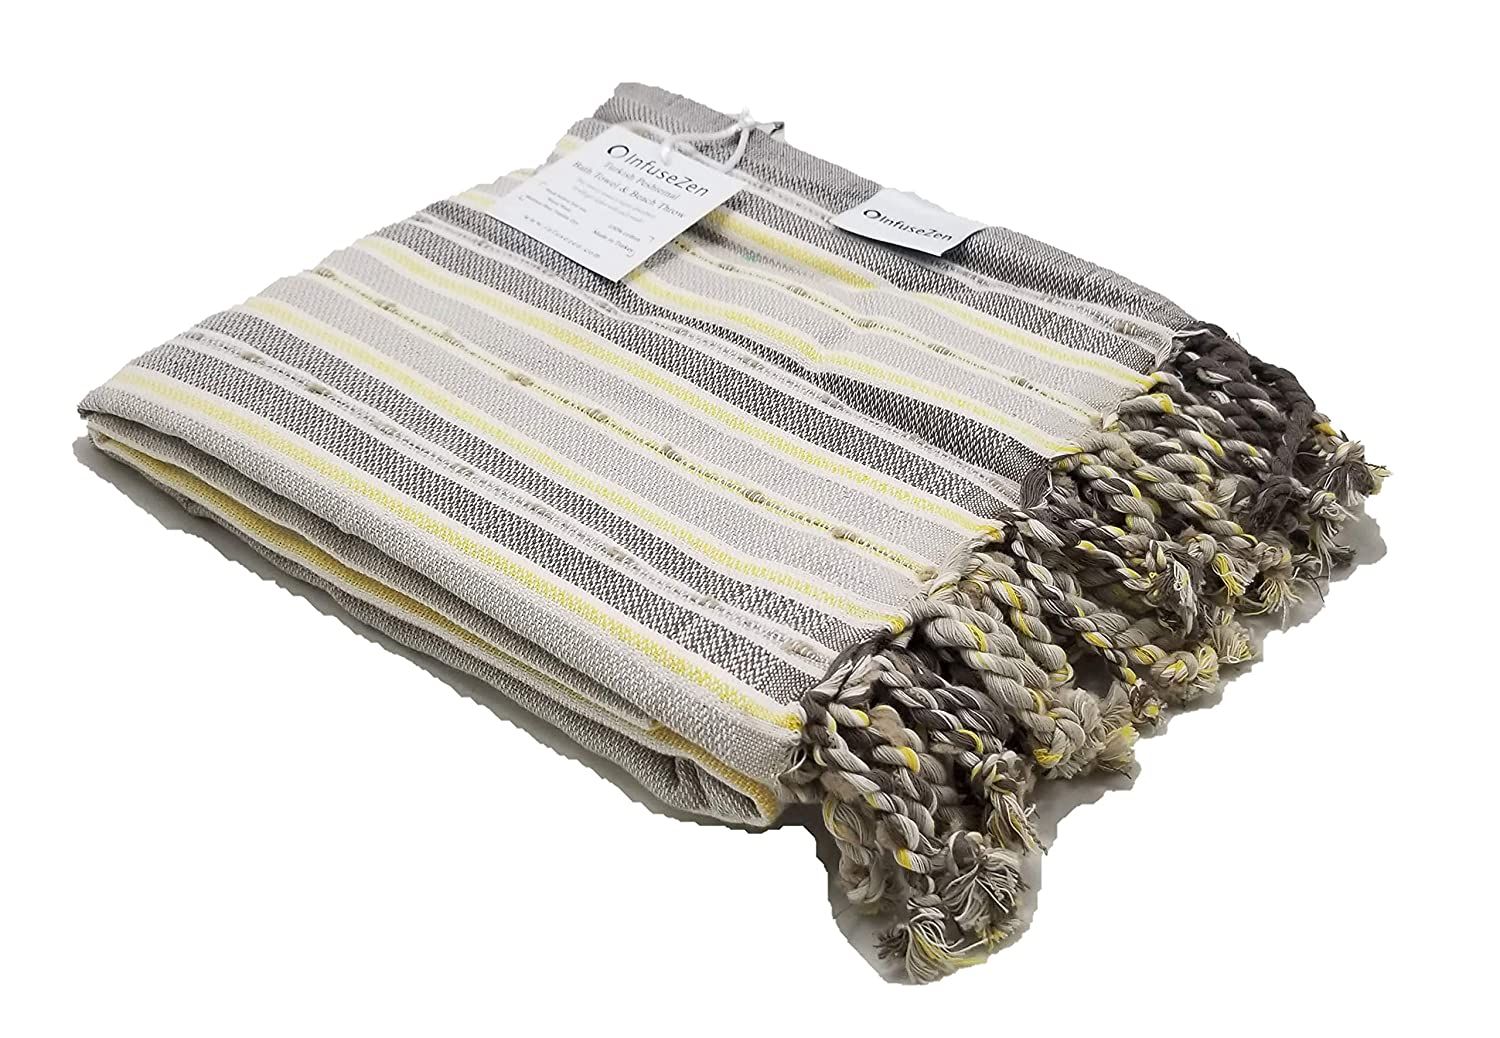 InfuseZen Oversized Turkish Peshtemal Bath Towel in Modern Stripes Pool Towel or Beach Throw Extra Large Turkish Towel Thin and Absorbant Bath Sheet 100/% Cotton Fouta Towel Special Edition Mint